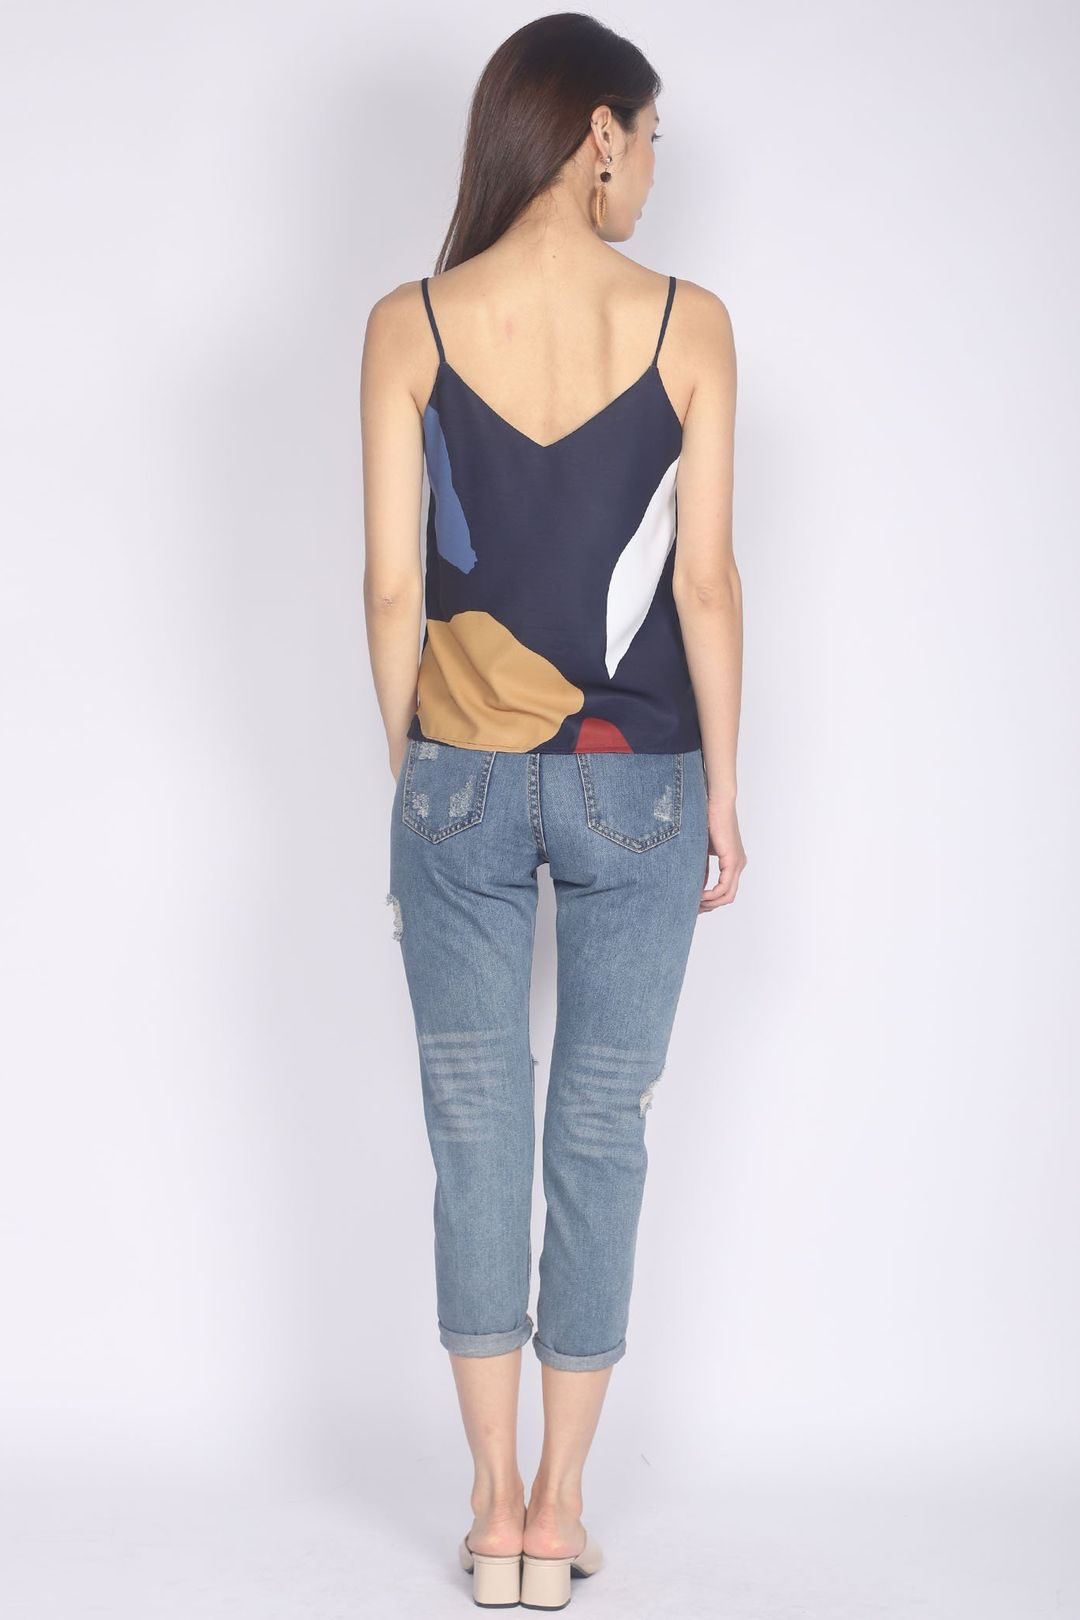 *Restocked* Mariot Abstract Camisole Top In Navy Blue